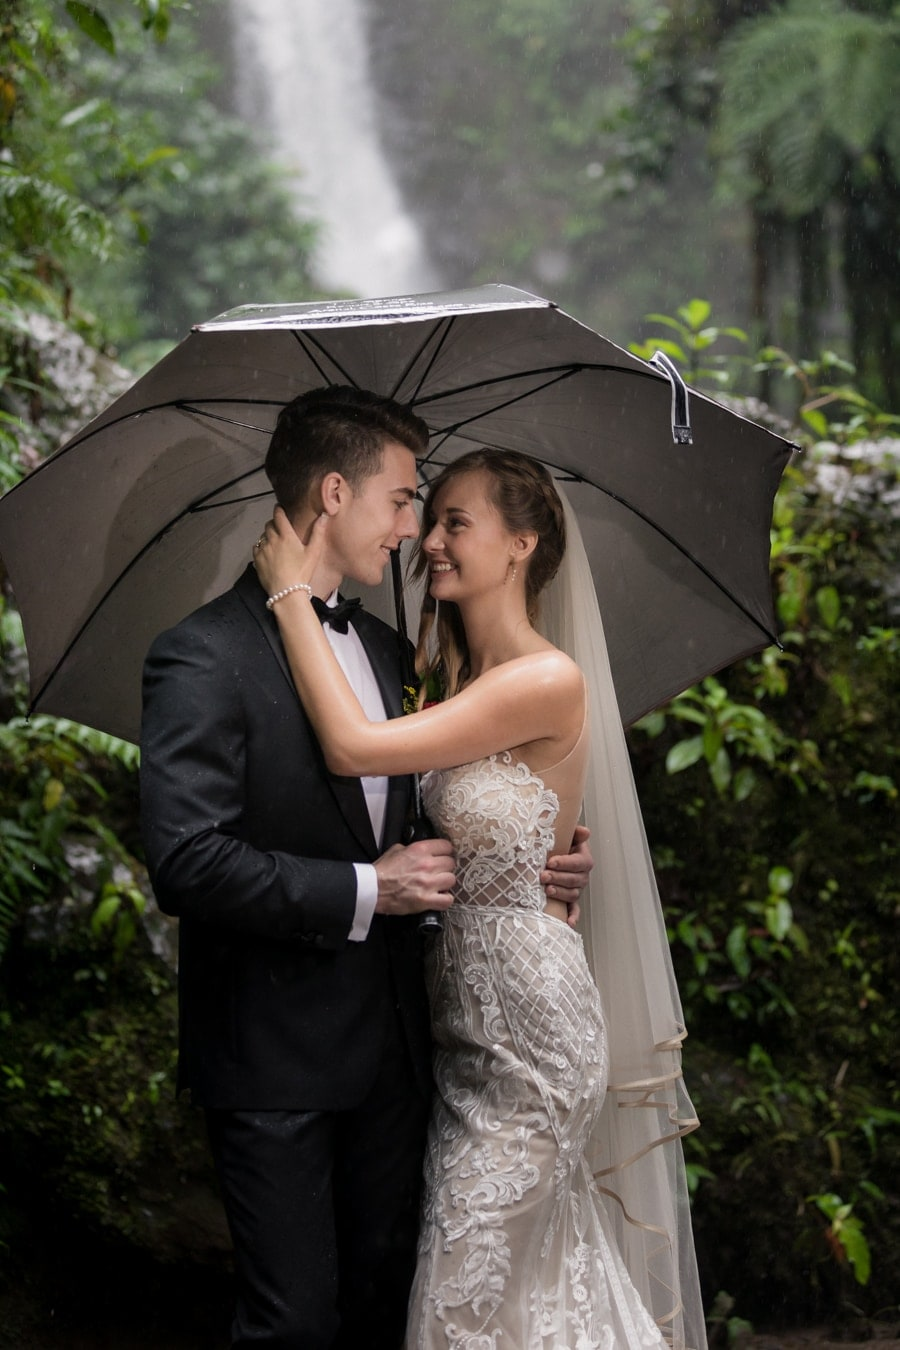 Sierra-Thomas-bride-groom-photos-La-Paz-Waterfall-Gardens-13.jpg